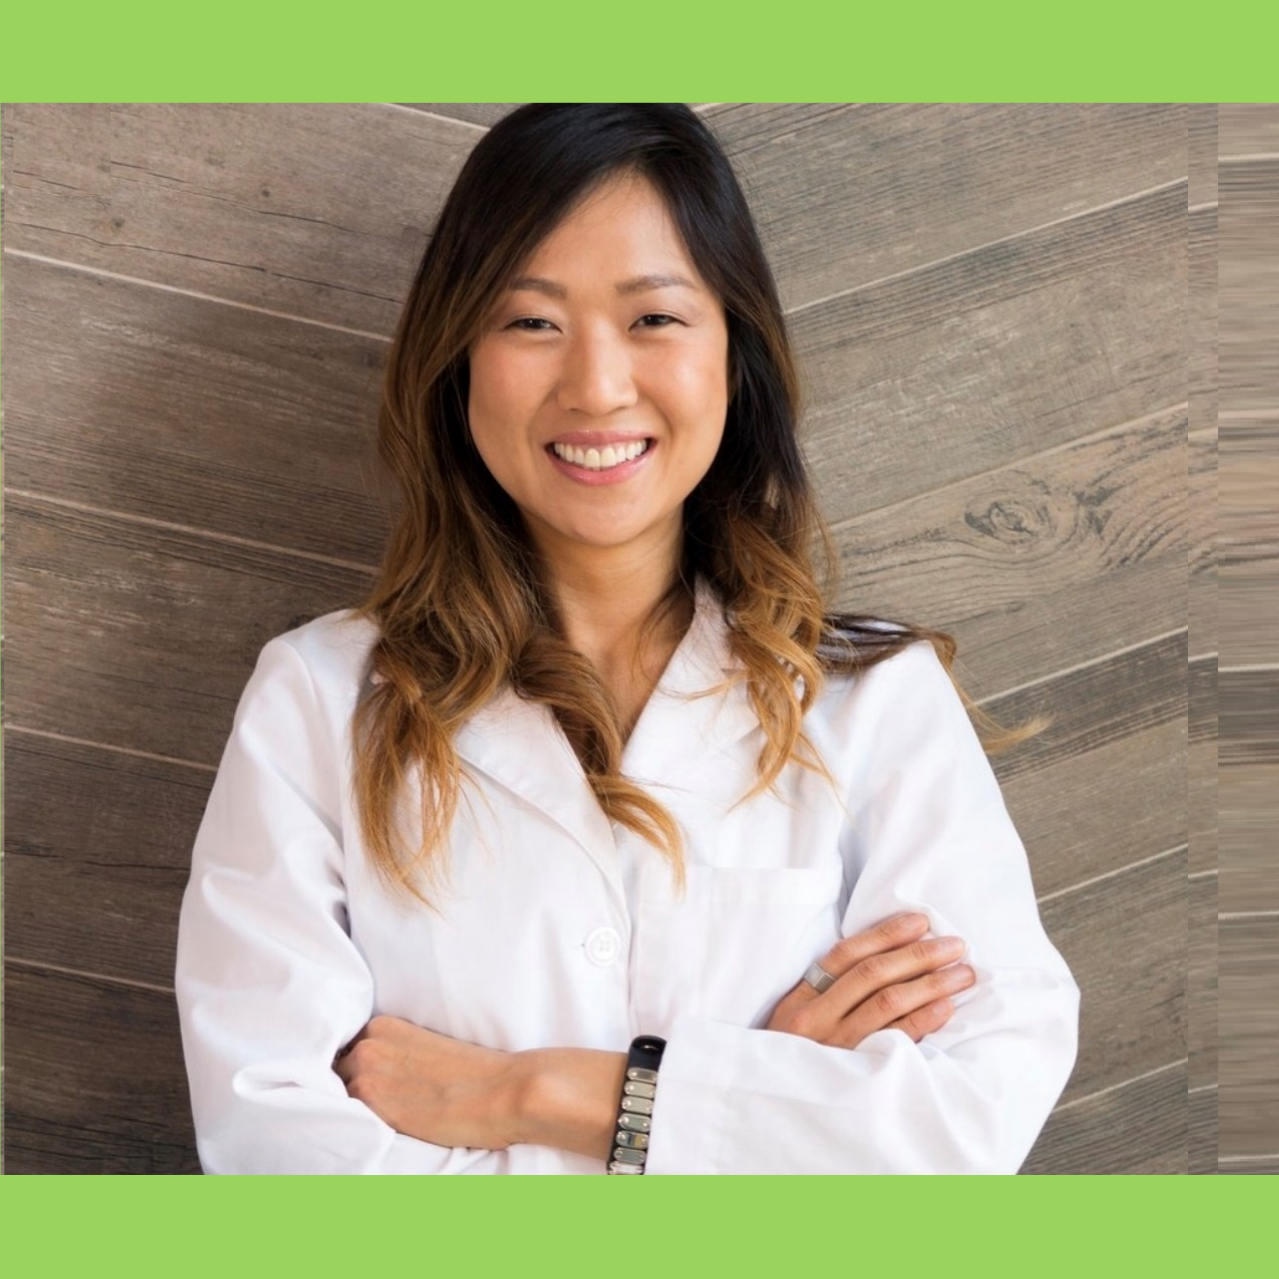 Dr. Millie Chung